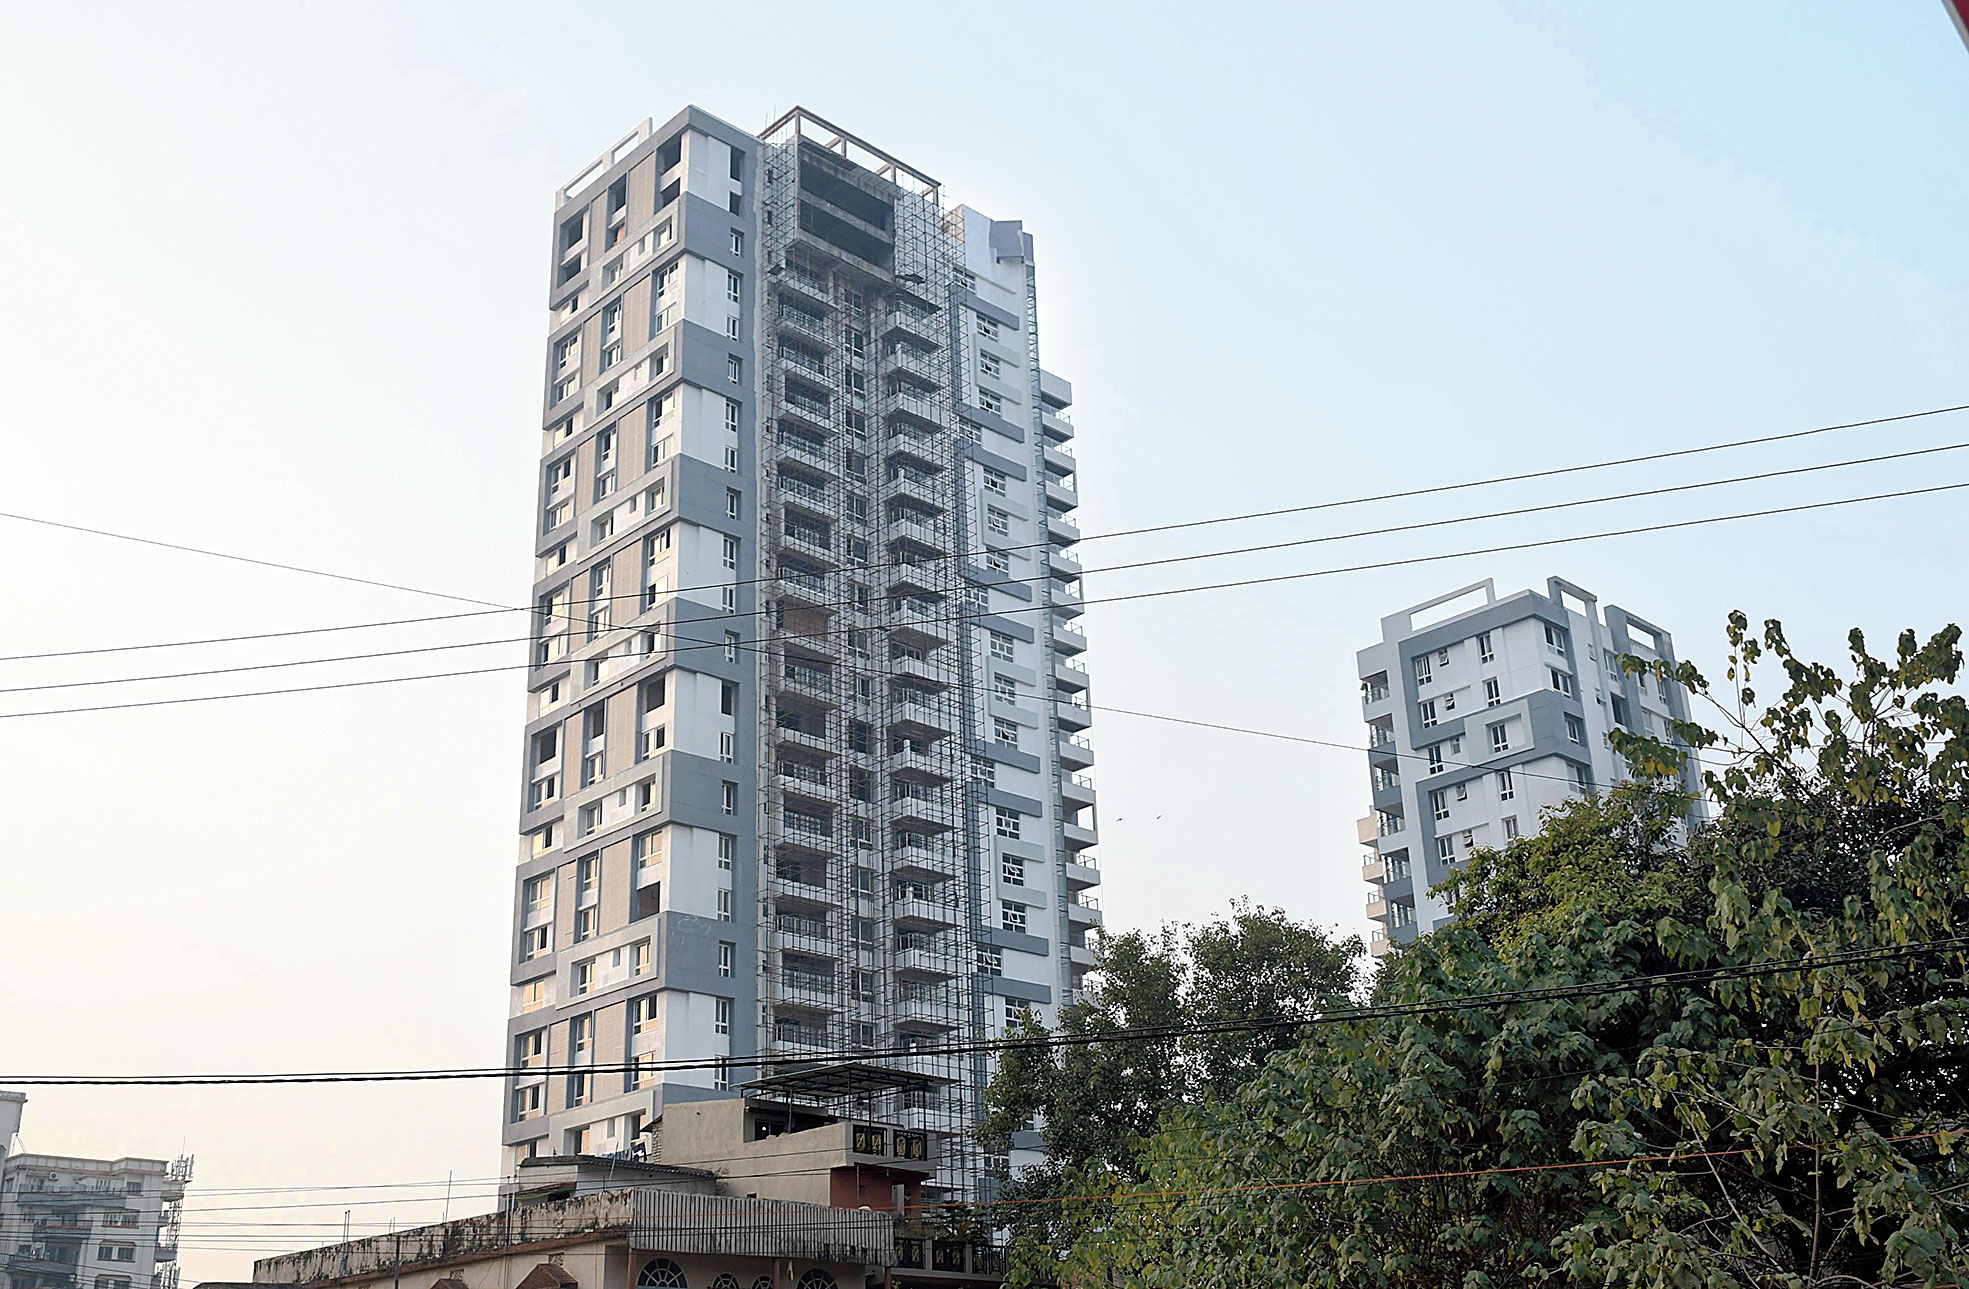 One of the high-rises in Lalpur, Ranchi, where RMC stopped construction work on Wednesday.